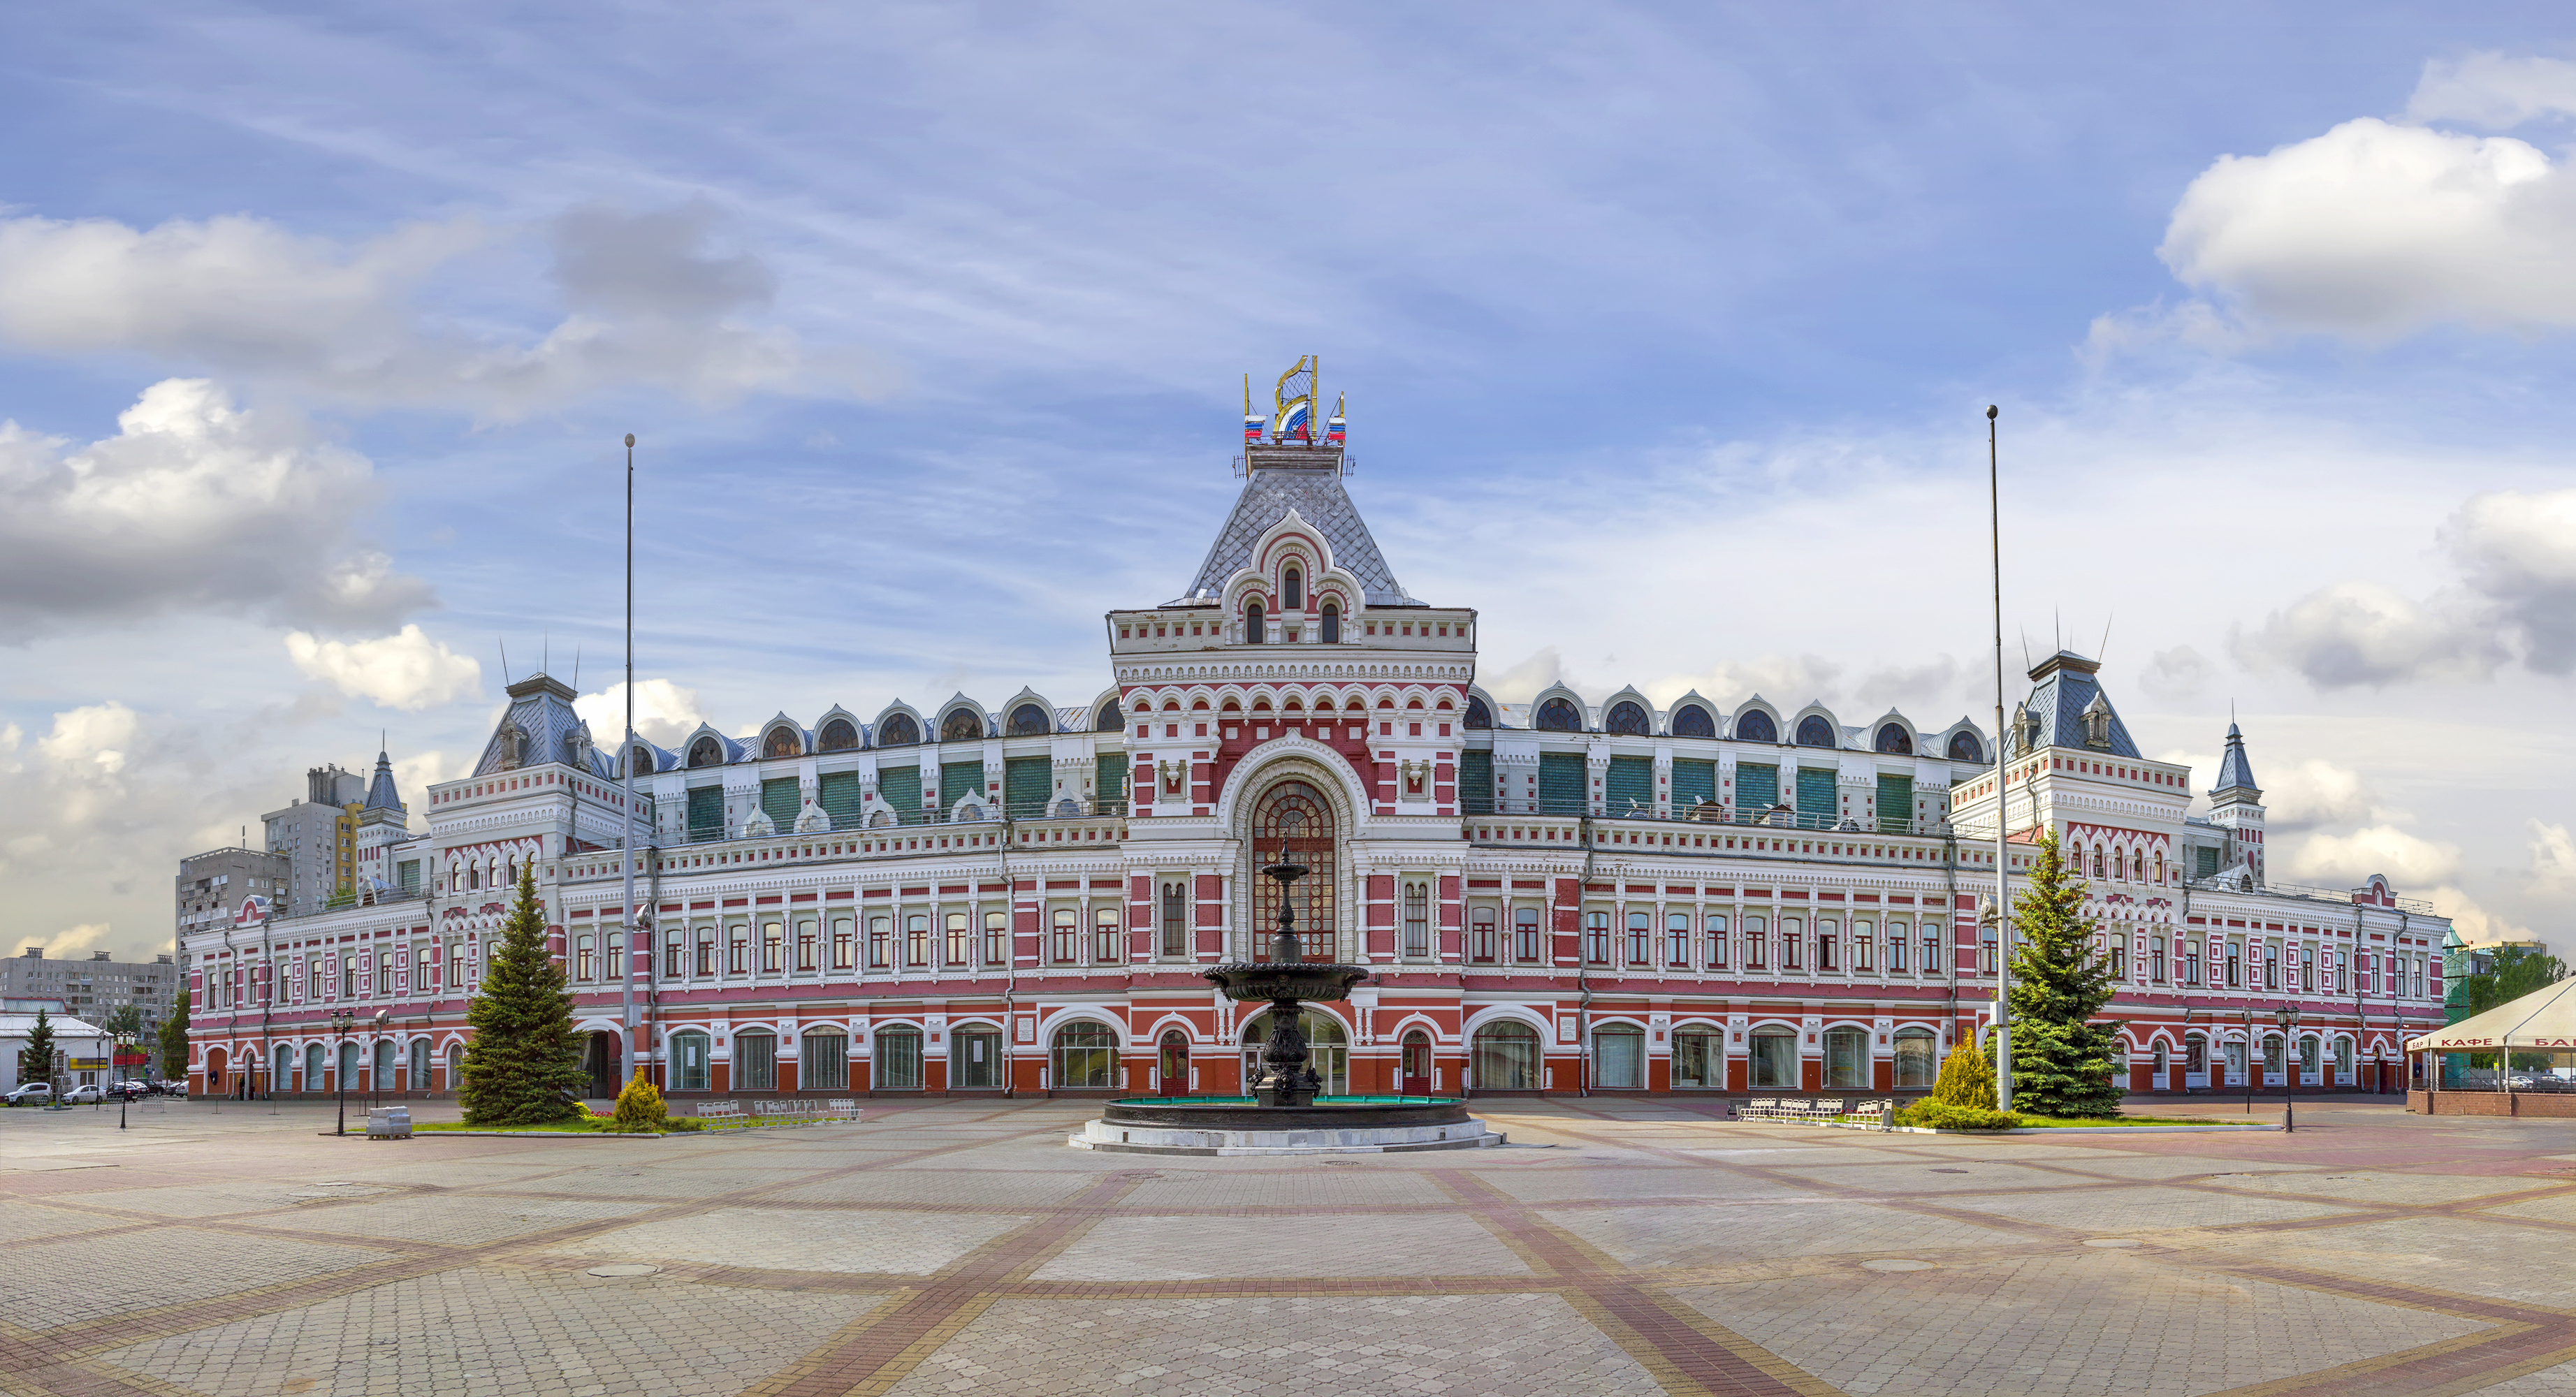 The building of the Nizhny Novgorod Fair. Nizhny Novgorod, Russi